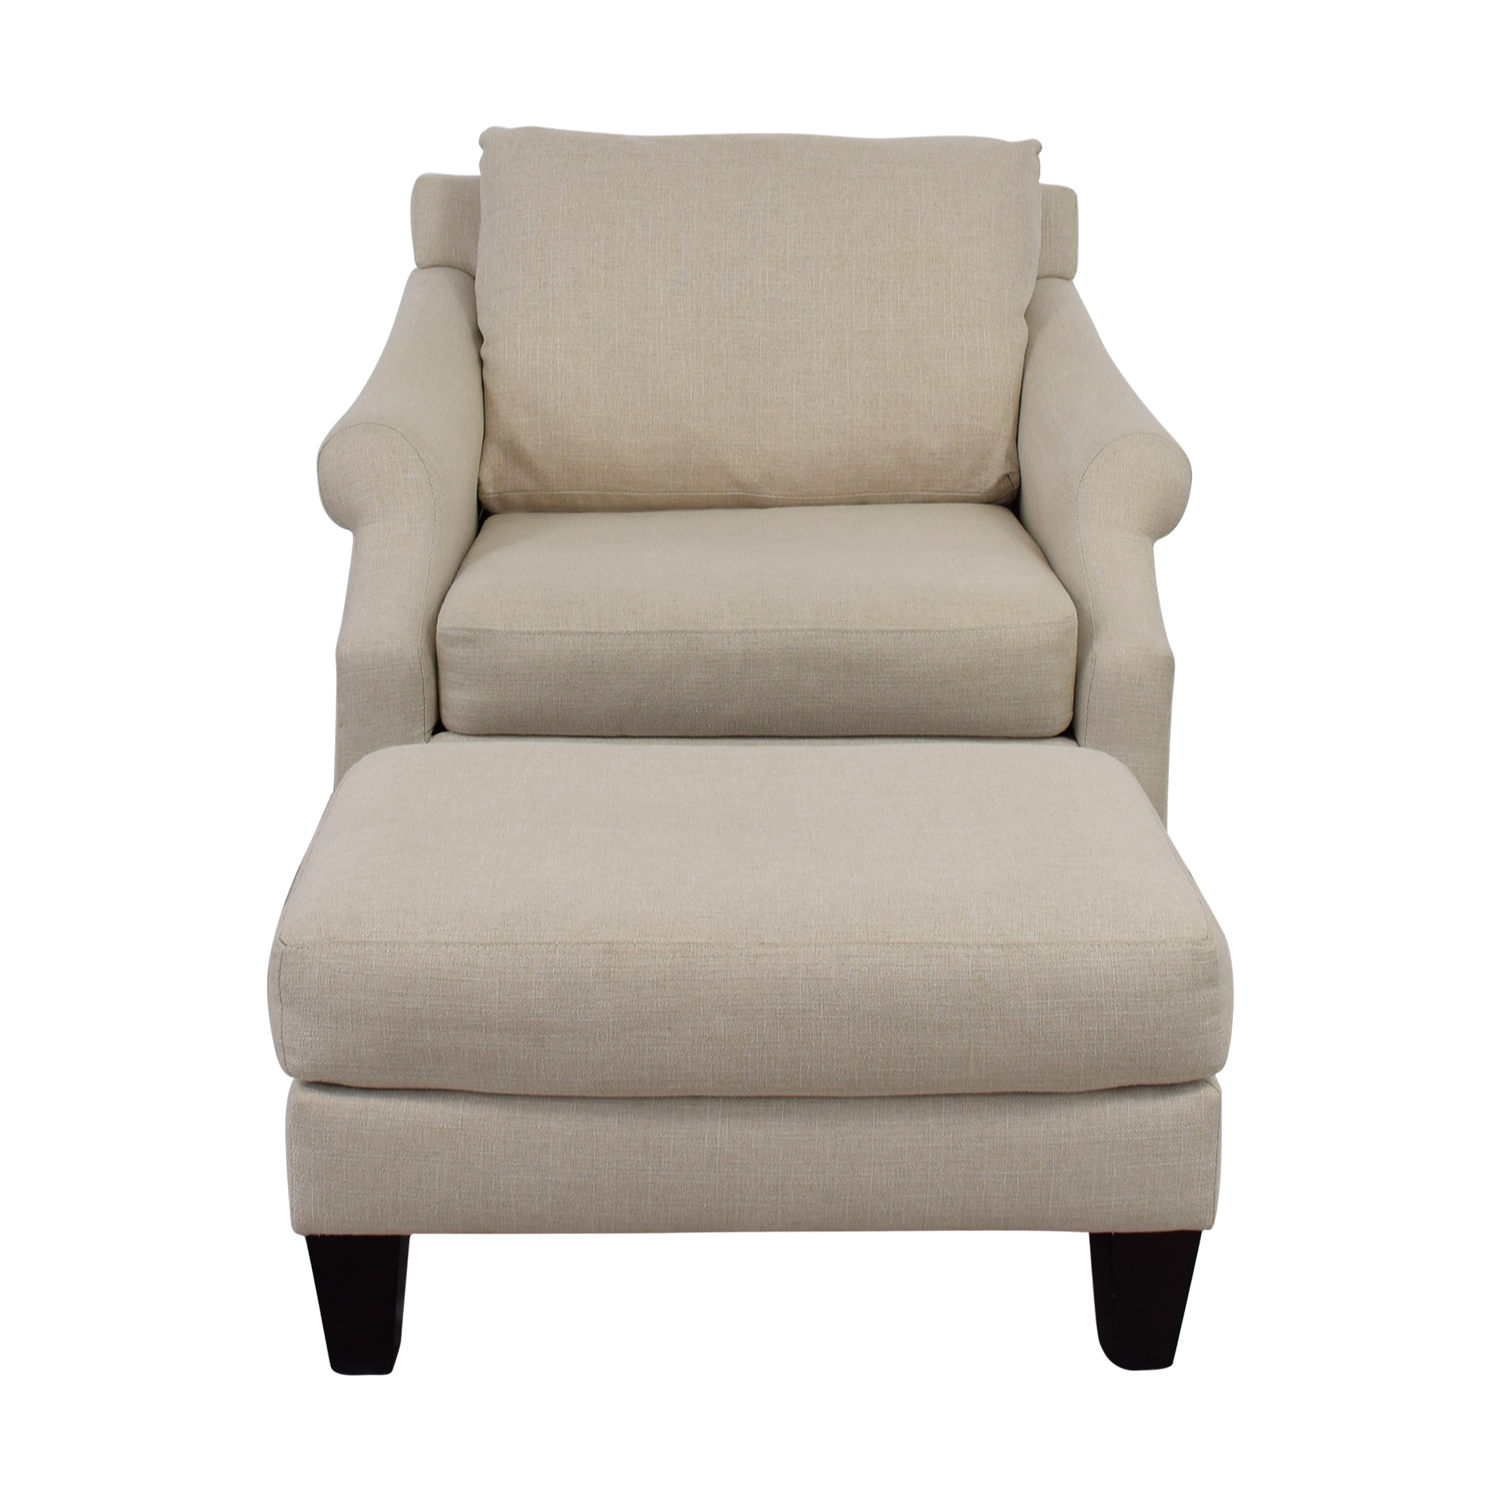 Raymour & Flanigan Raymour & Flanigan Beige Love Chair and Ottoman nj